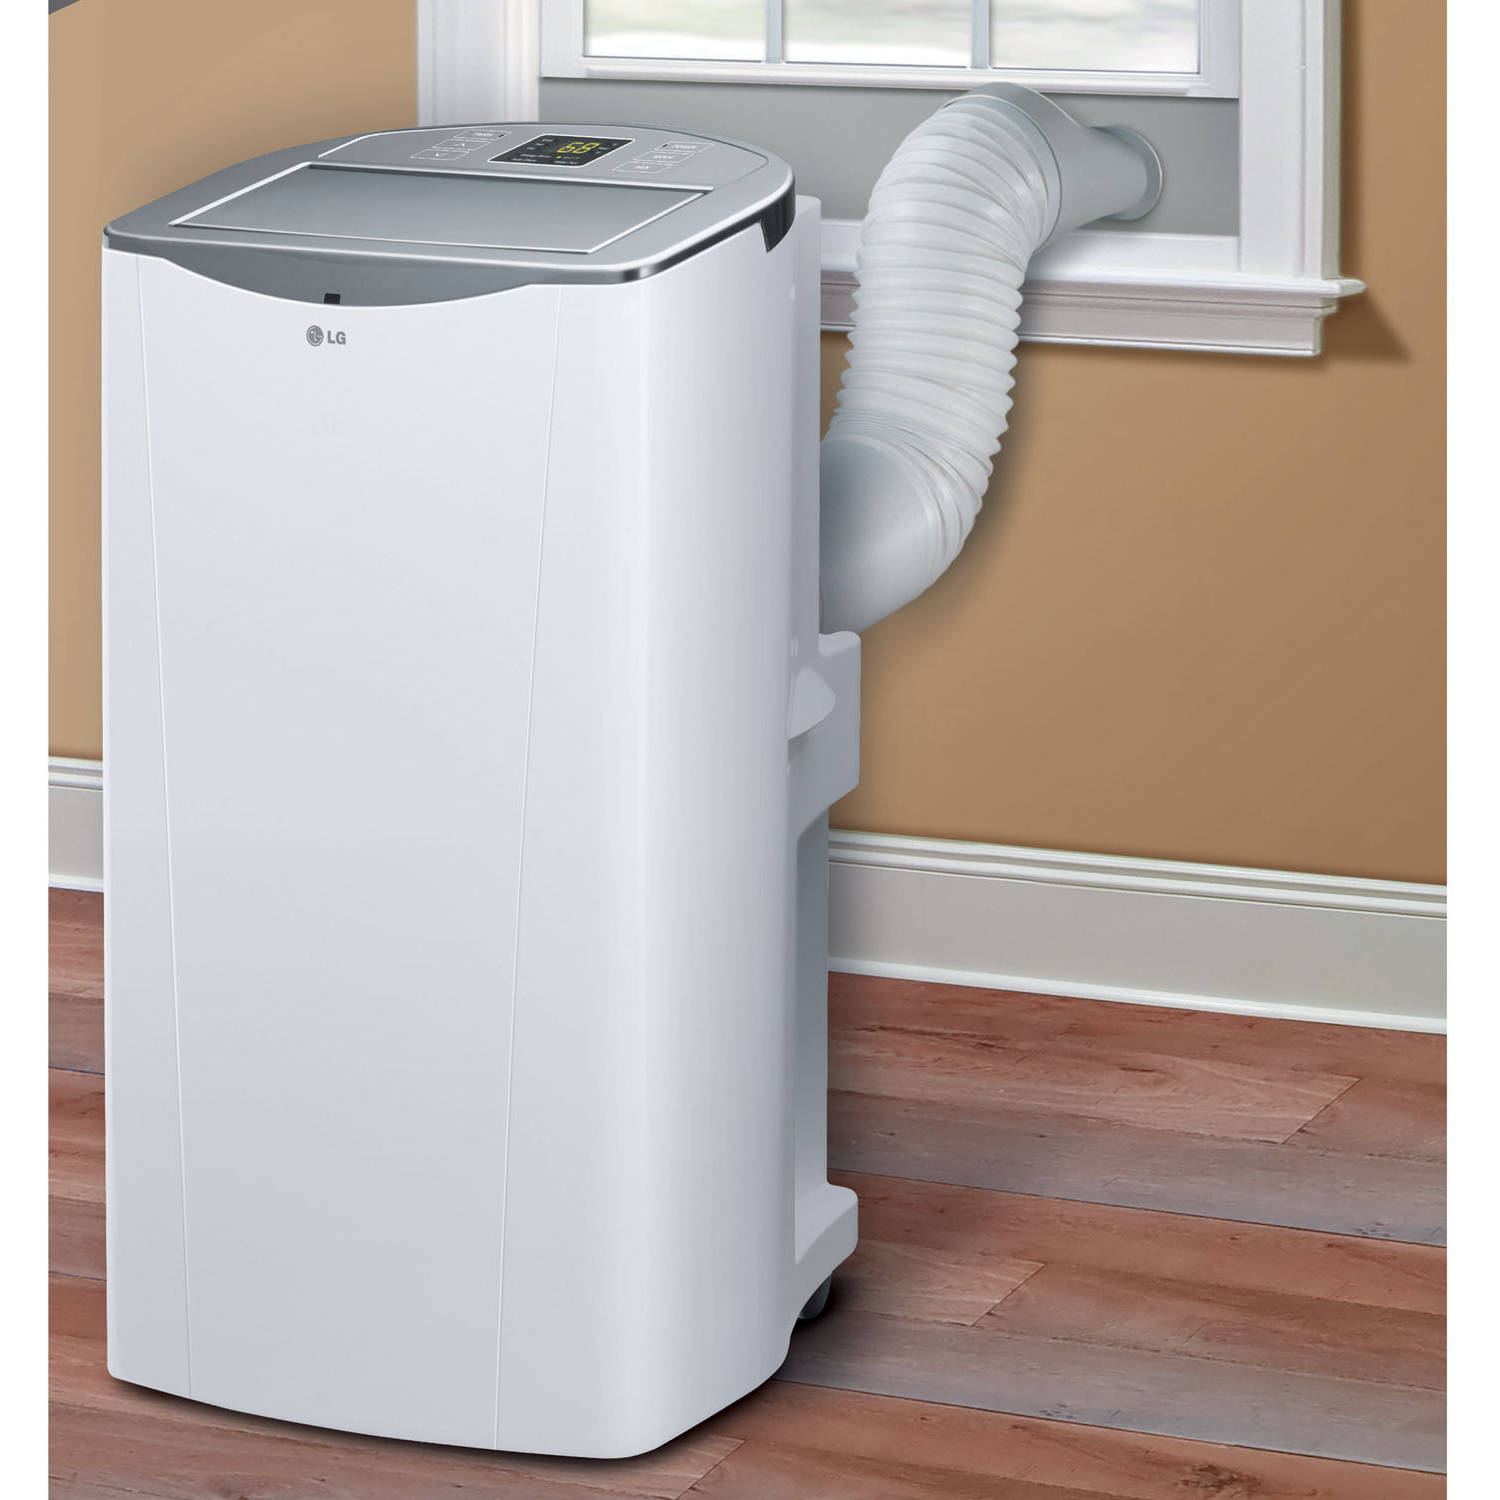 Awesome LG Electronics LP1415WXRSM 14,000 BTU 115V Portable Air Conditioner With  WiFi Technology